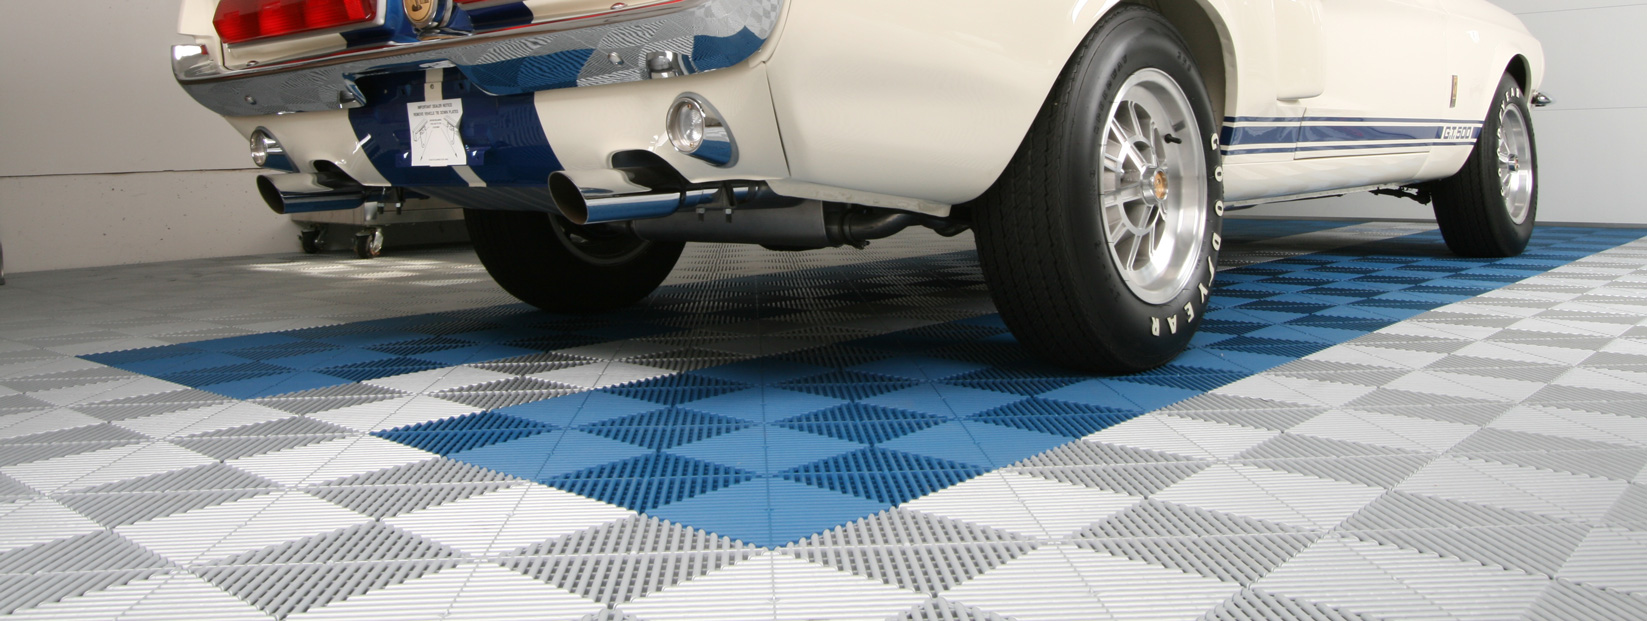 Garage Flooring Tiles Philadelphia